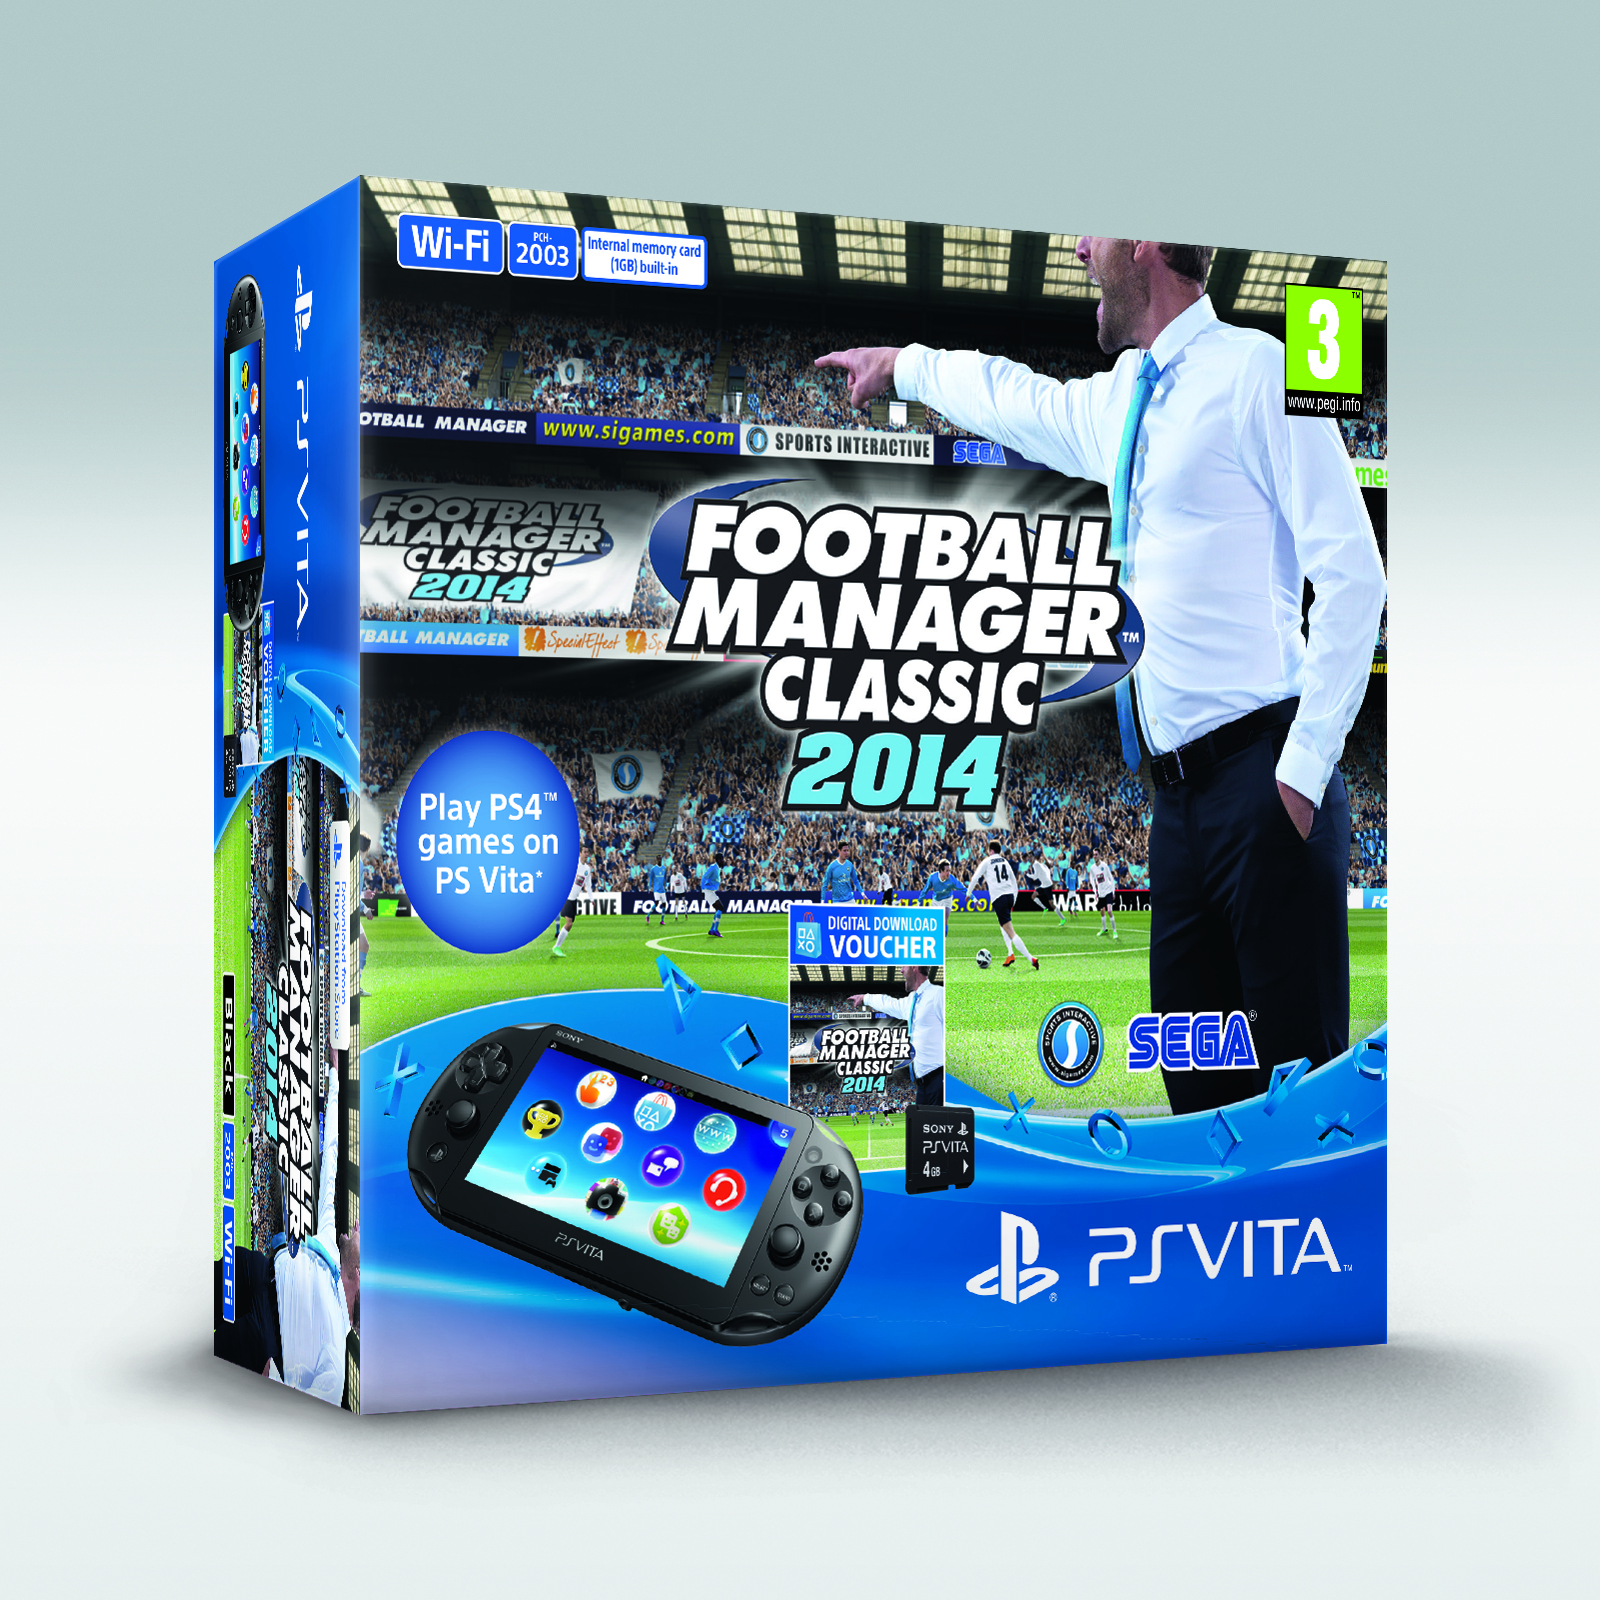 Football Manager Classic 2014 PS Vita console bundle